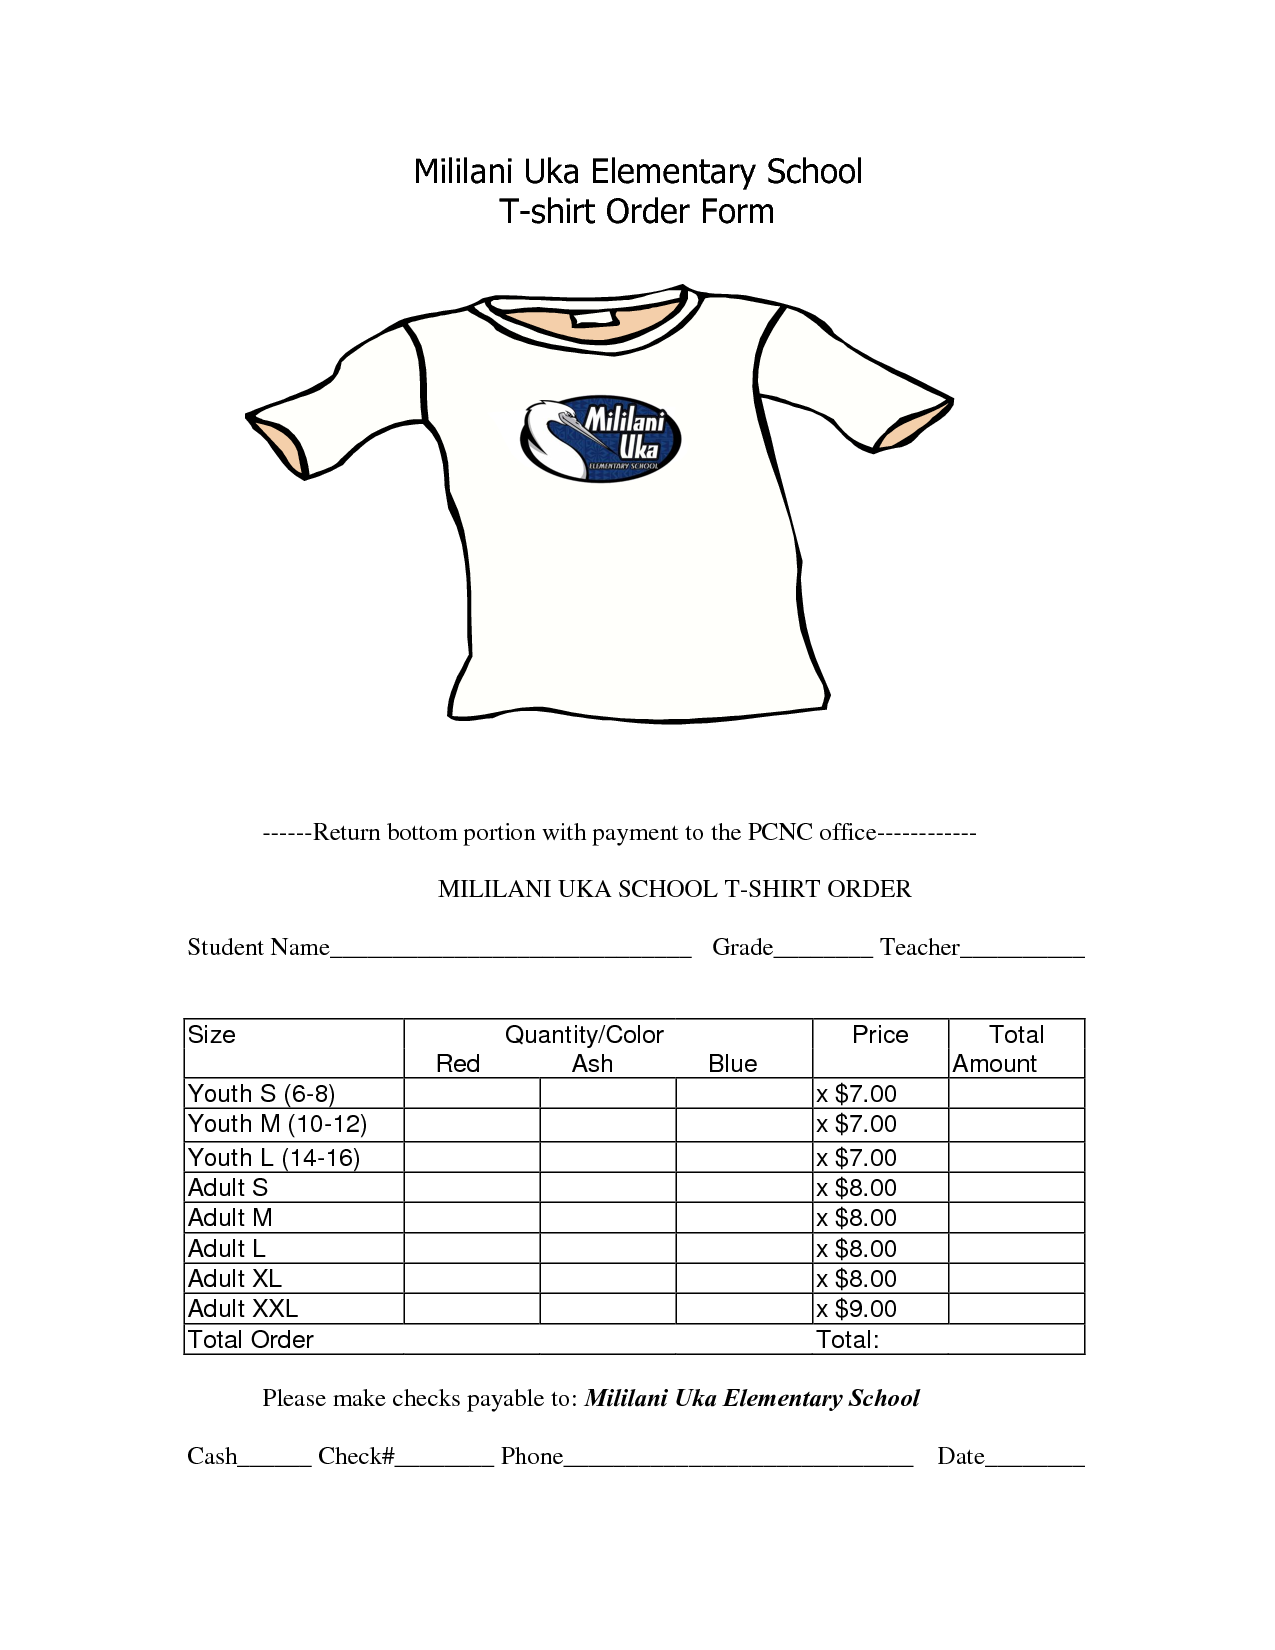 School T Shirt Order Form Template Awana Pinterest Order Form